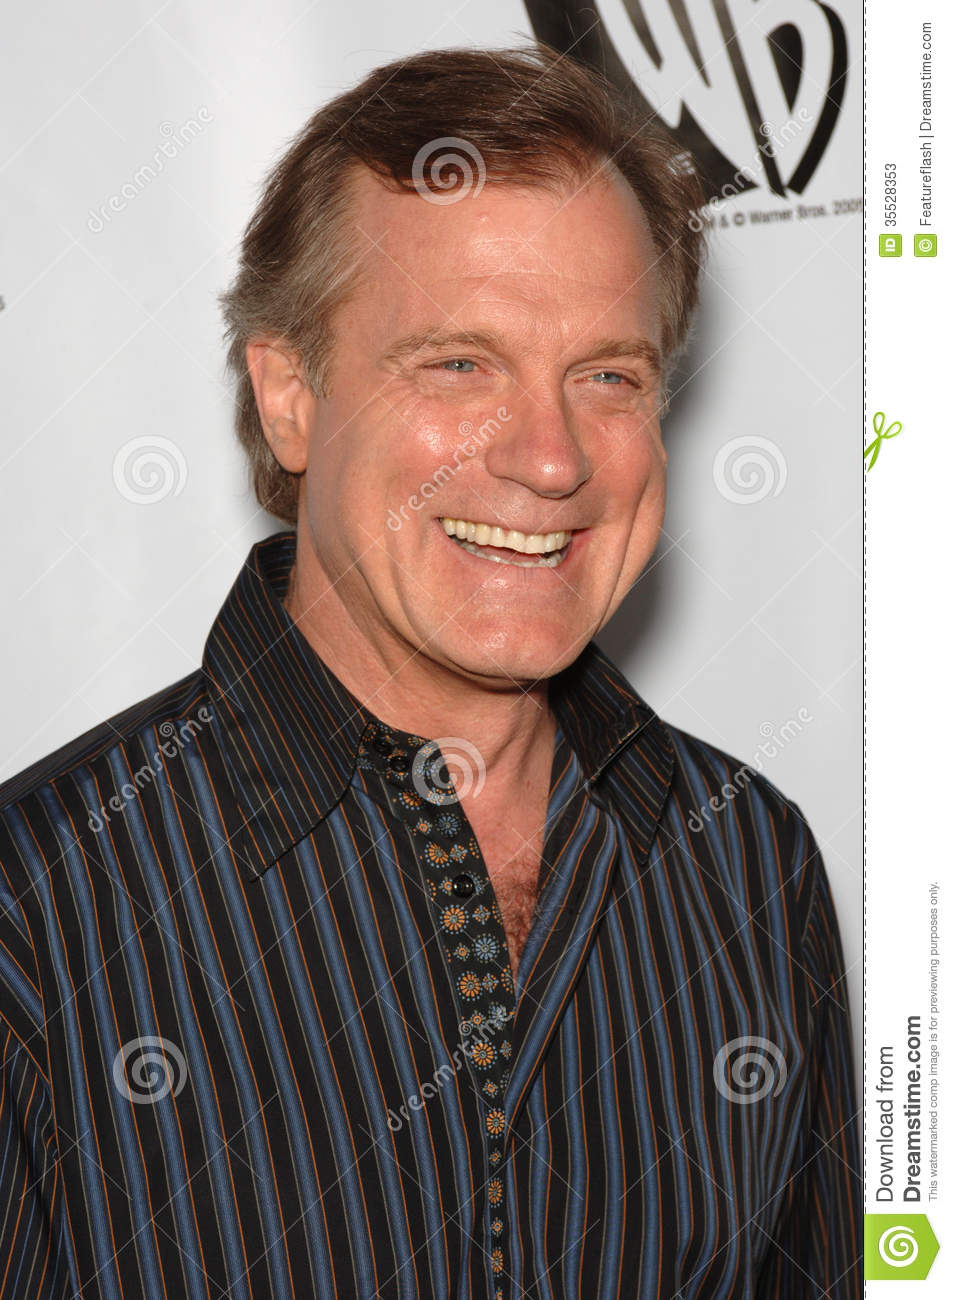 stephen collins vimpelcomstephen collins actor, stephen collins belt, stephen collins jll, stephen collins vimpelcom, stephen collins 2016, stephen collins youtube, stephen collins instagram, stephen collins foster, stephen collins foster beautiful dreamer, stephen collins, stephen collins scandal, stephen collins wiki, stephen collins illustrator, stephen collins news, stephen collins net worth, stephen collins imdb, stephen collins 7th heaven, stephen collins interview, stephen collins tape, stephen collins twitter